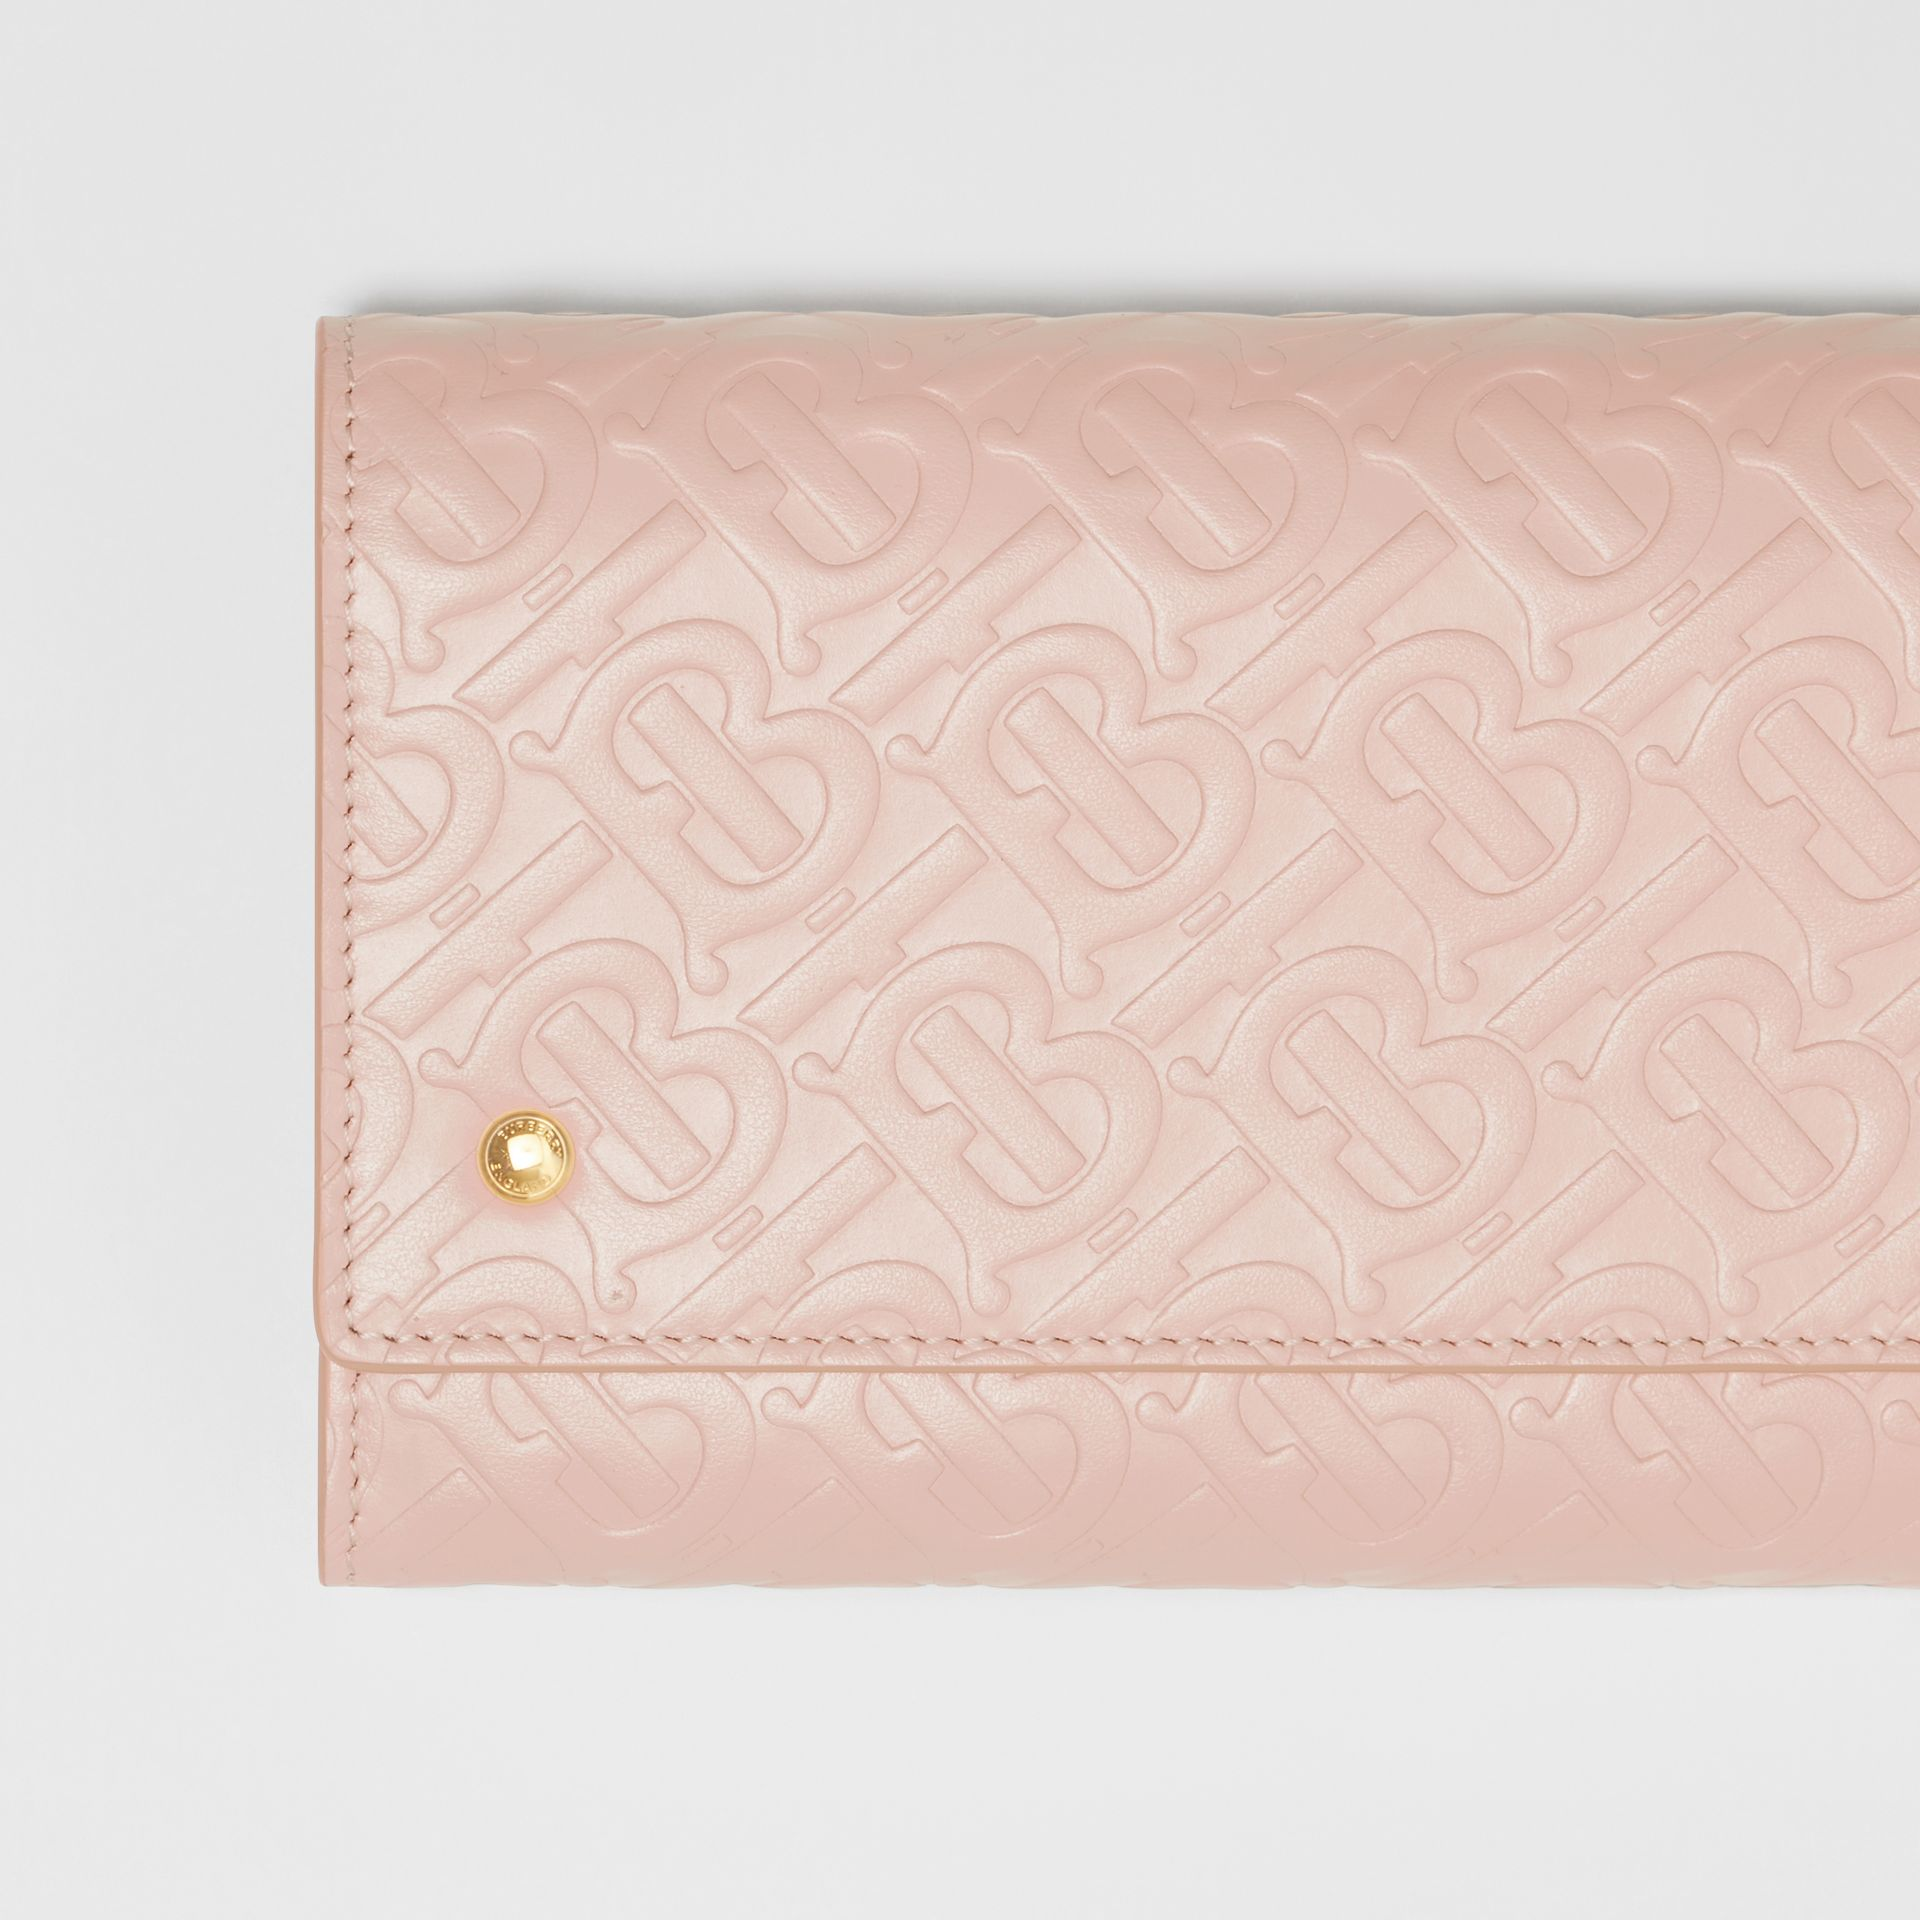 Portefeuille en cuir Monogram et sangle amovible (Beige Rose) - Femme | Burberry - photo de la galerie 1